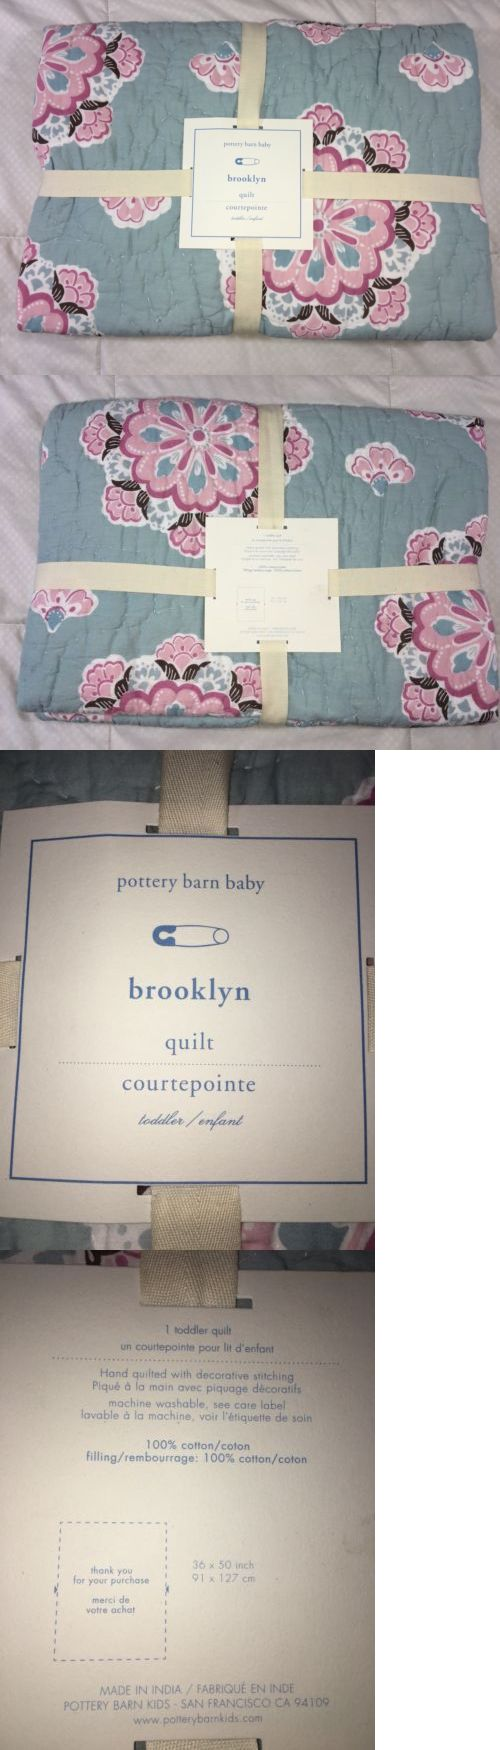 "Quilts and Coverlets 180908: Pottery Barn Kids Brooklyn Baby Quilt New For Crib Nursery Baby Bed 36"" X 50"" -> BUY IT NOW ONLY: $34.95 on eBay!"